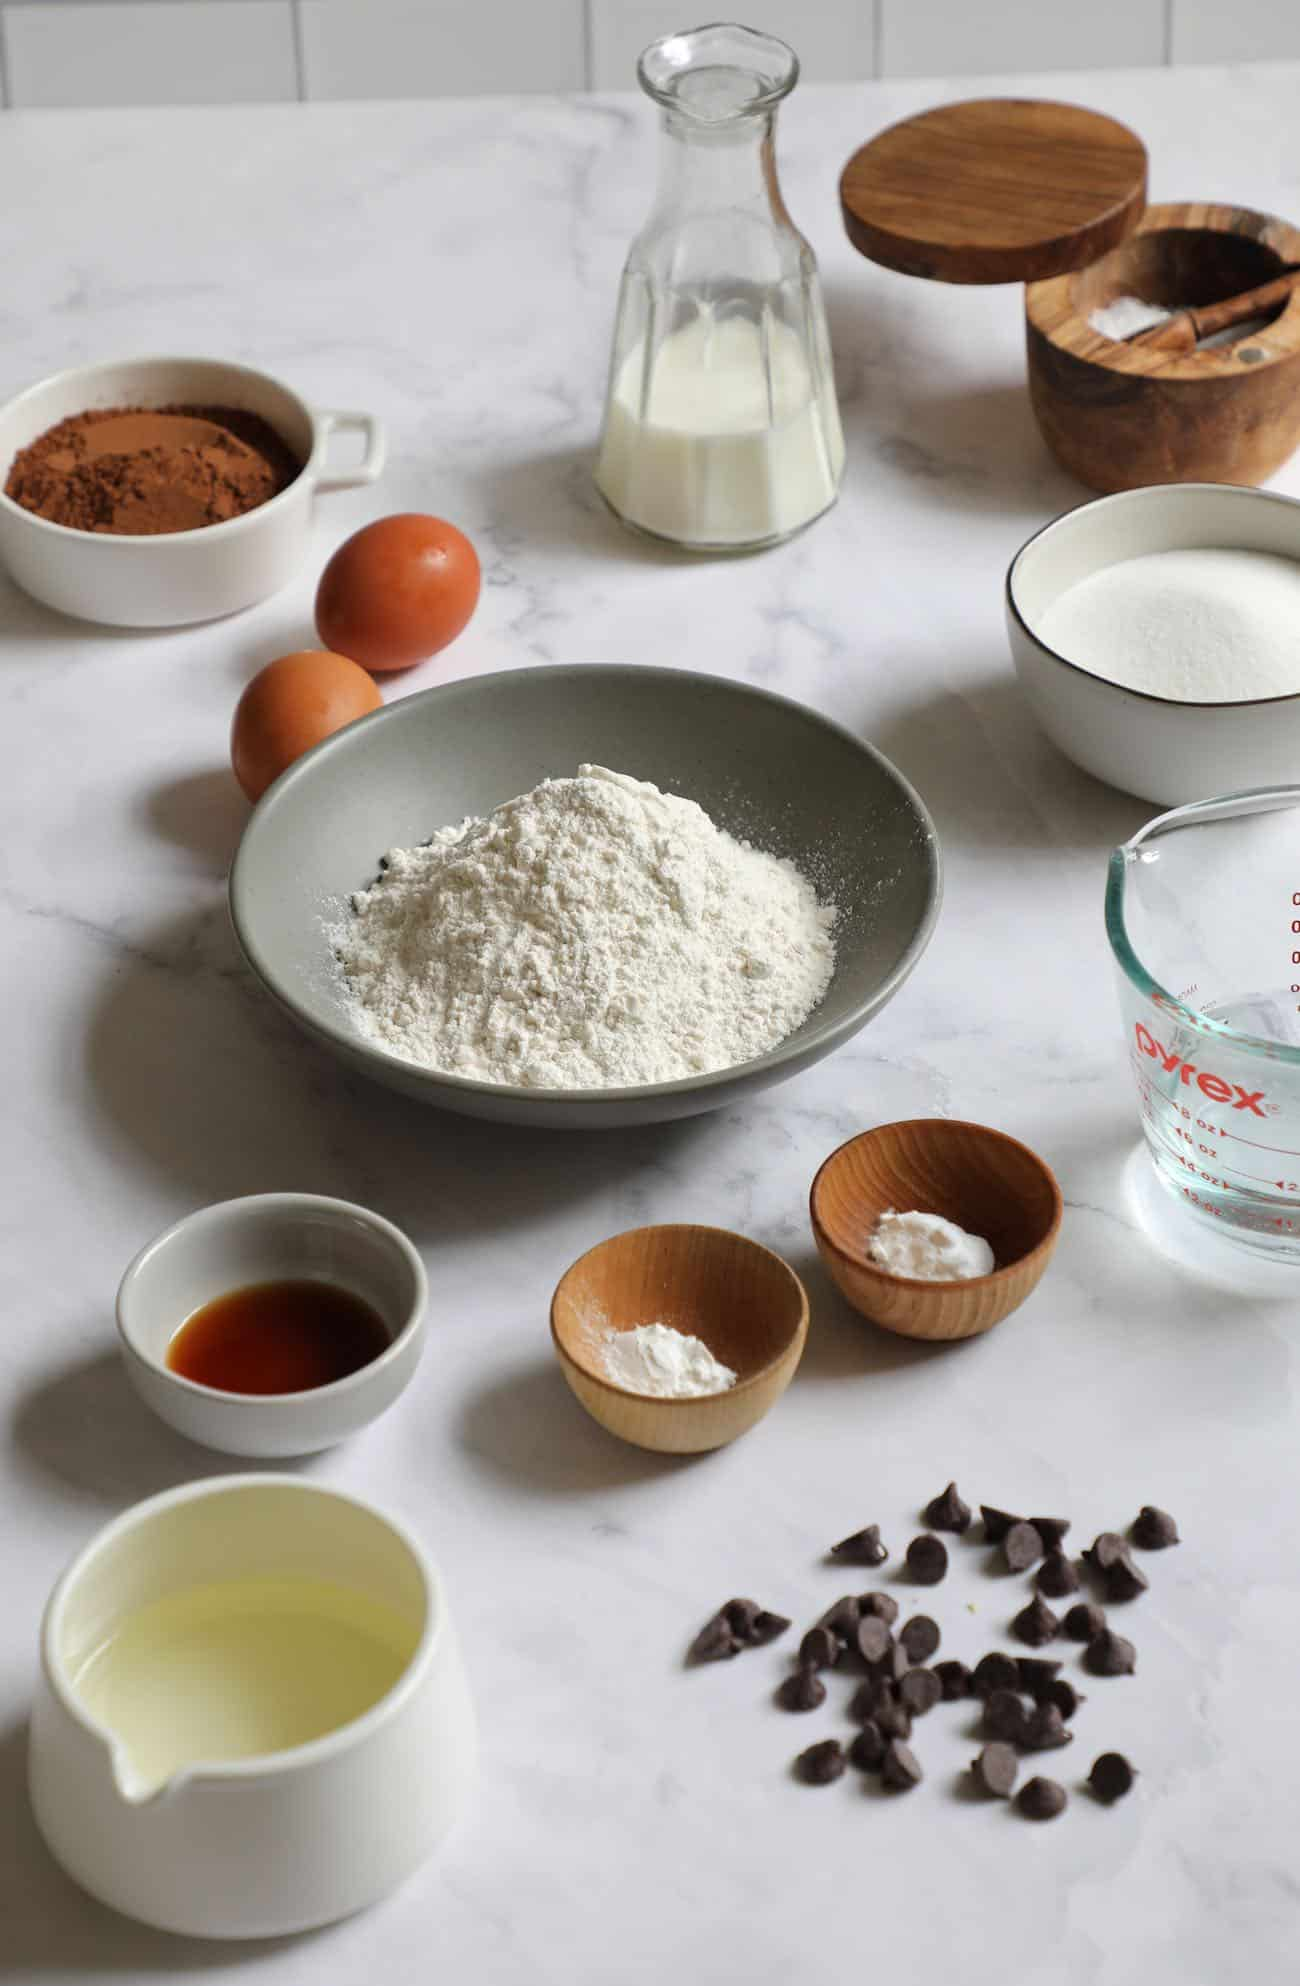 Ingredients for recipes laid out on the counter